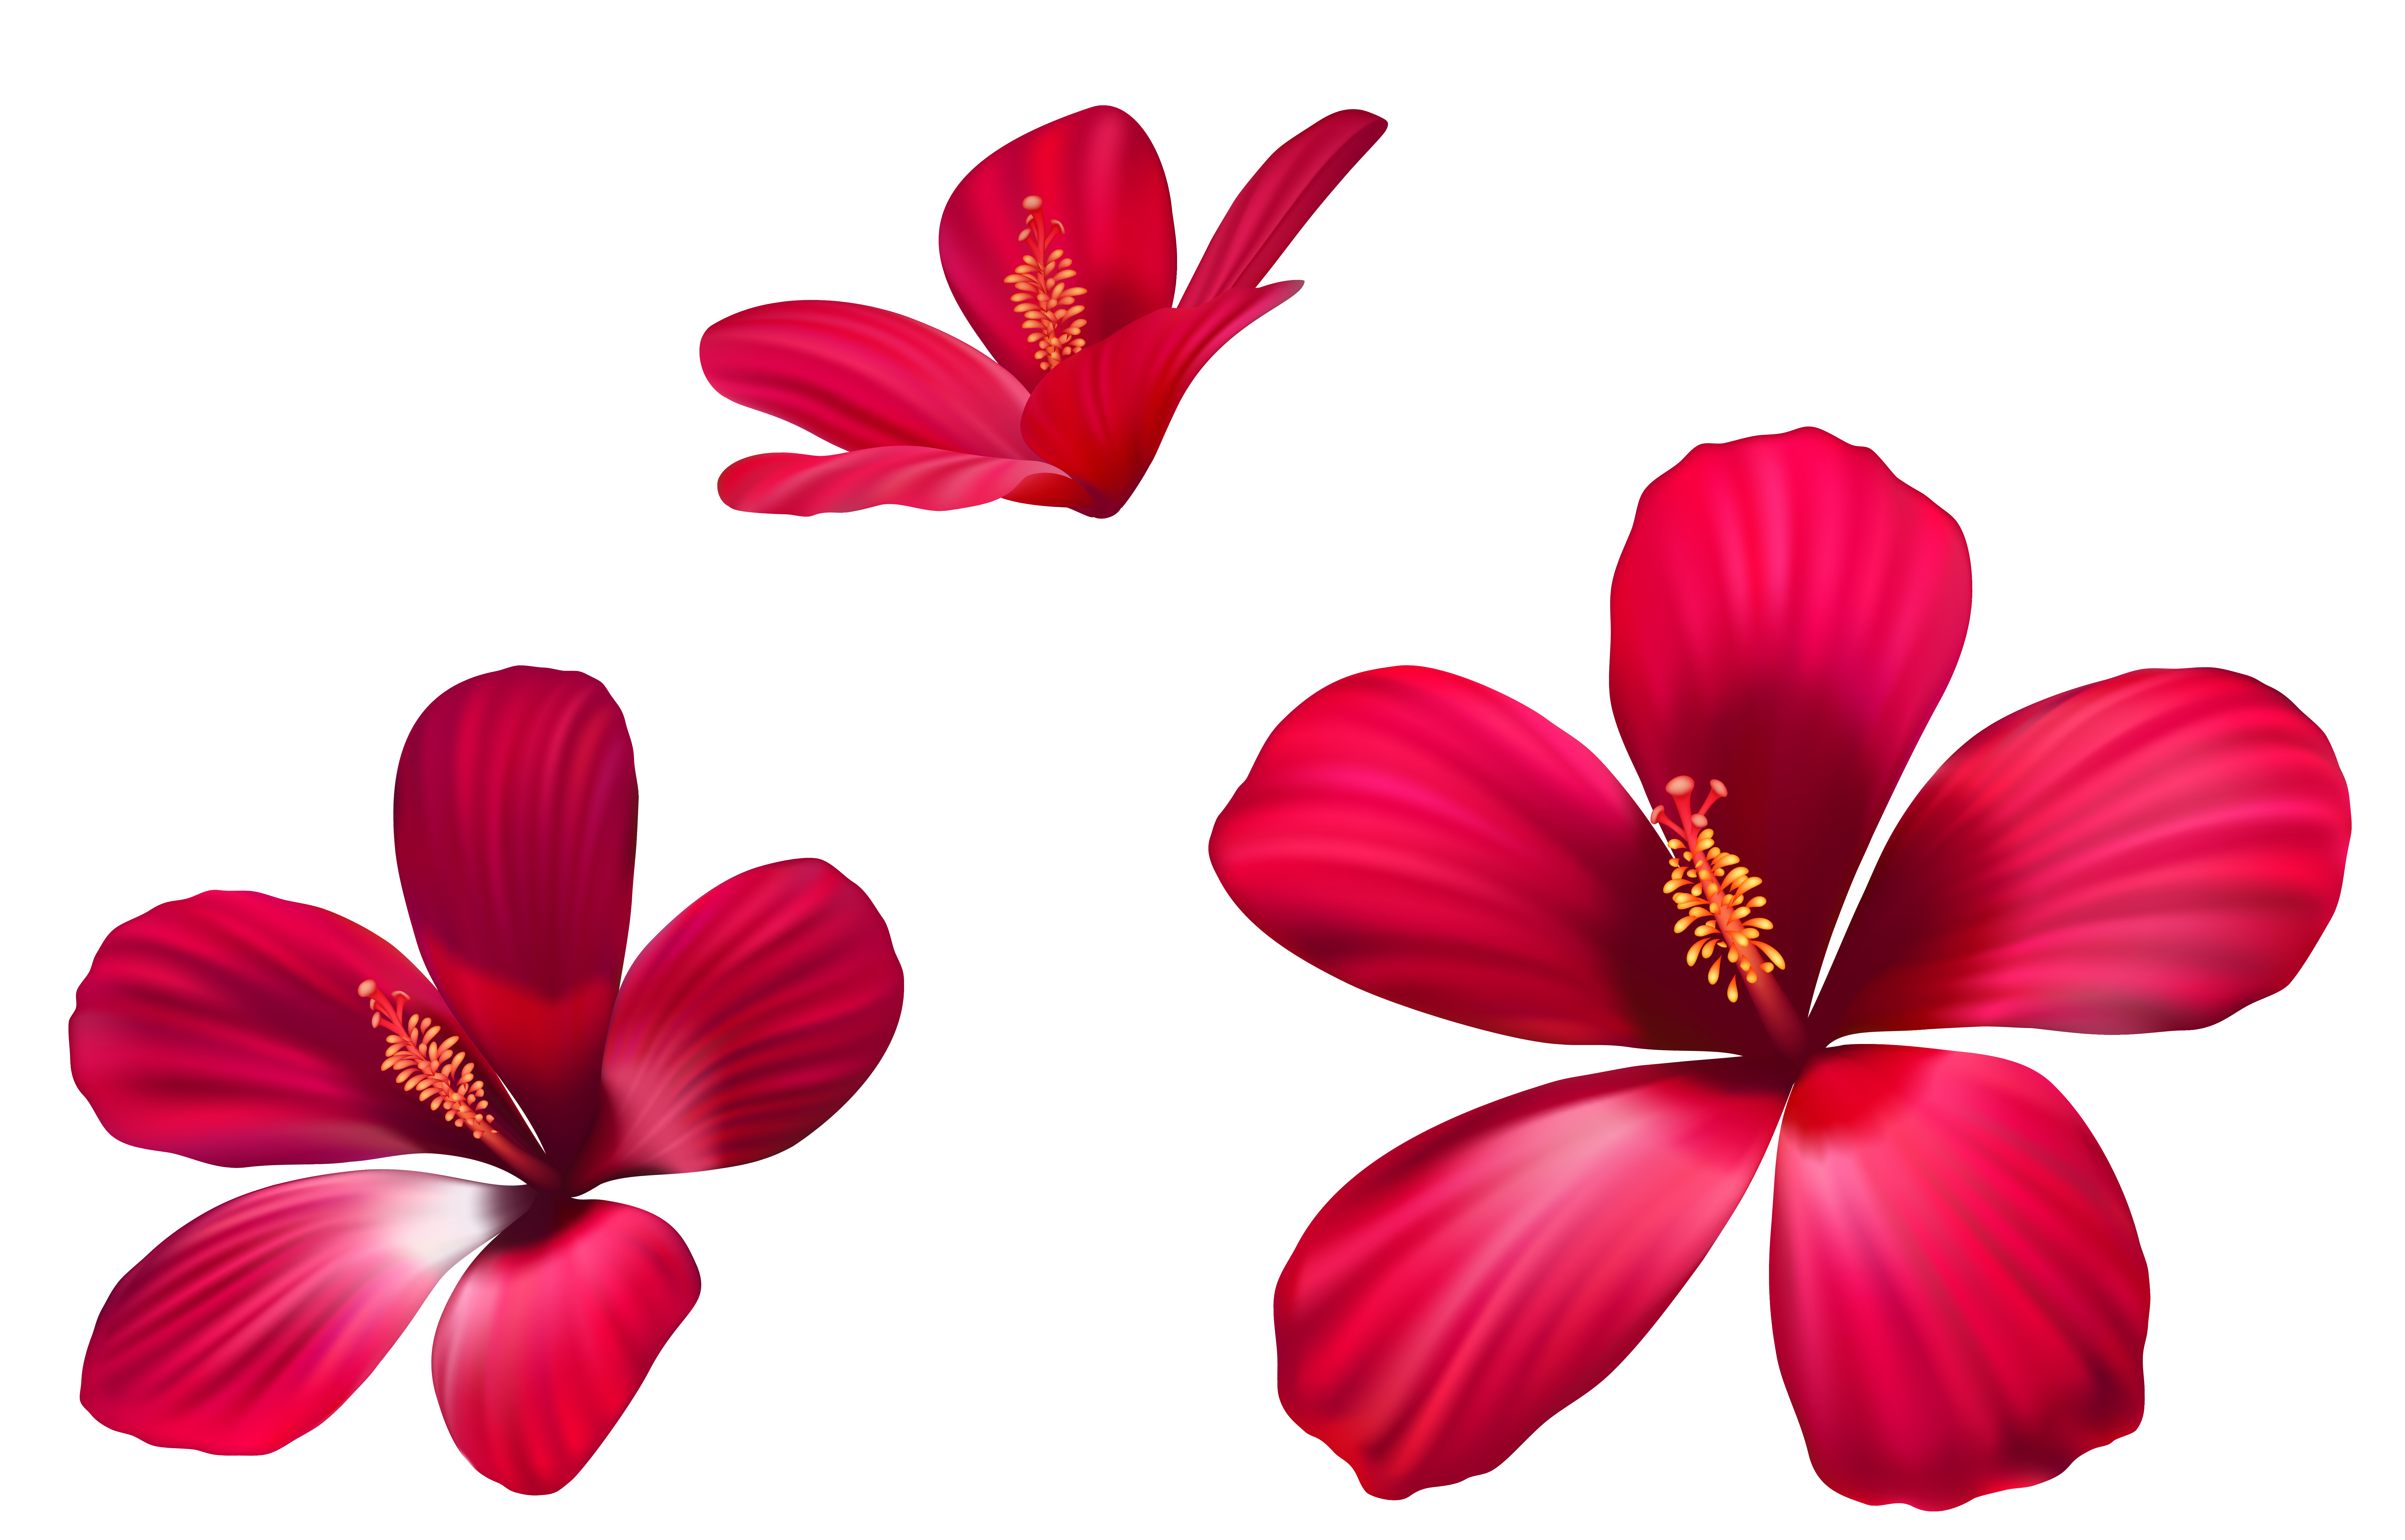 Small flowers png. Exotic pink clipart image